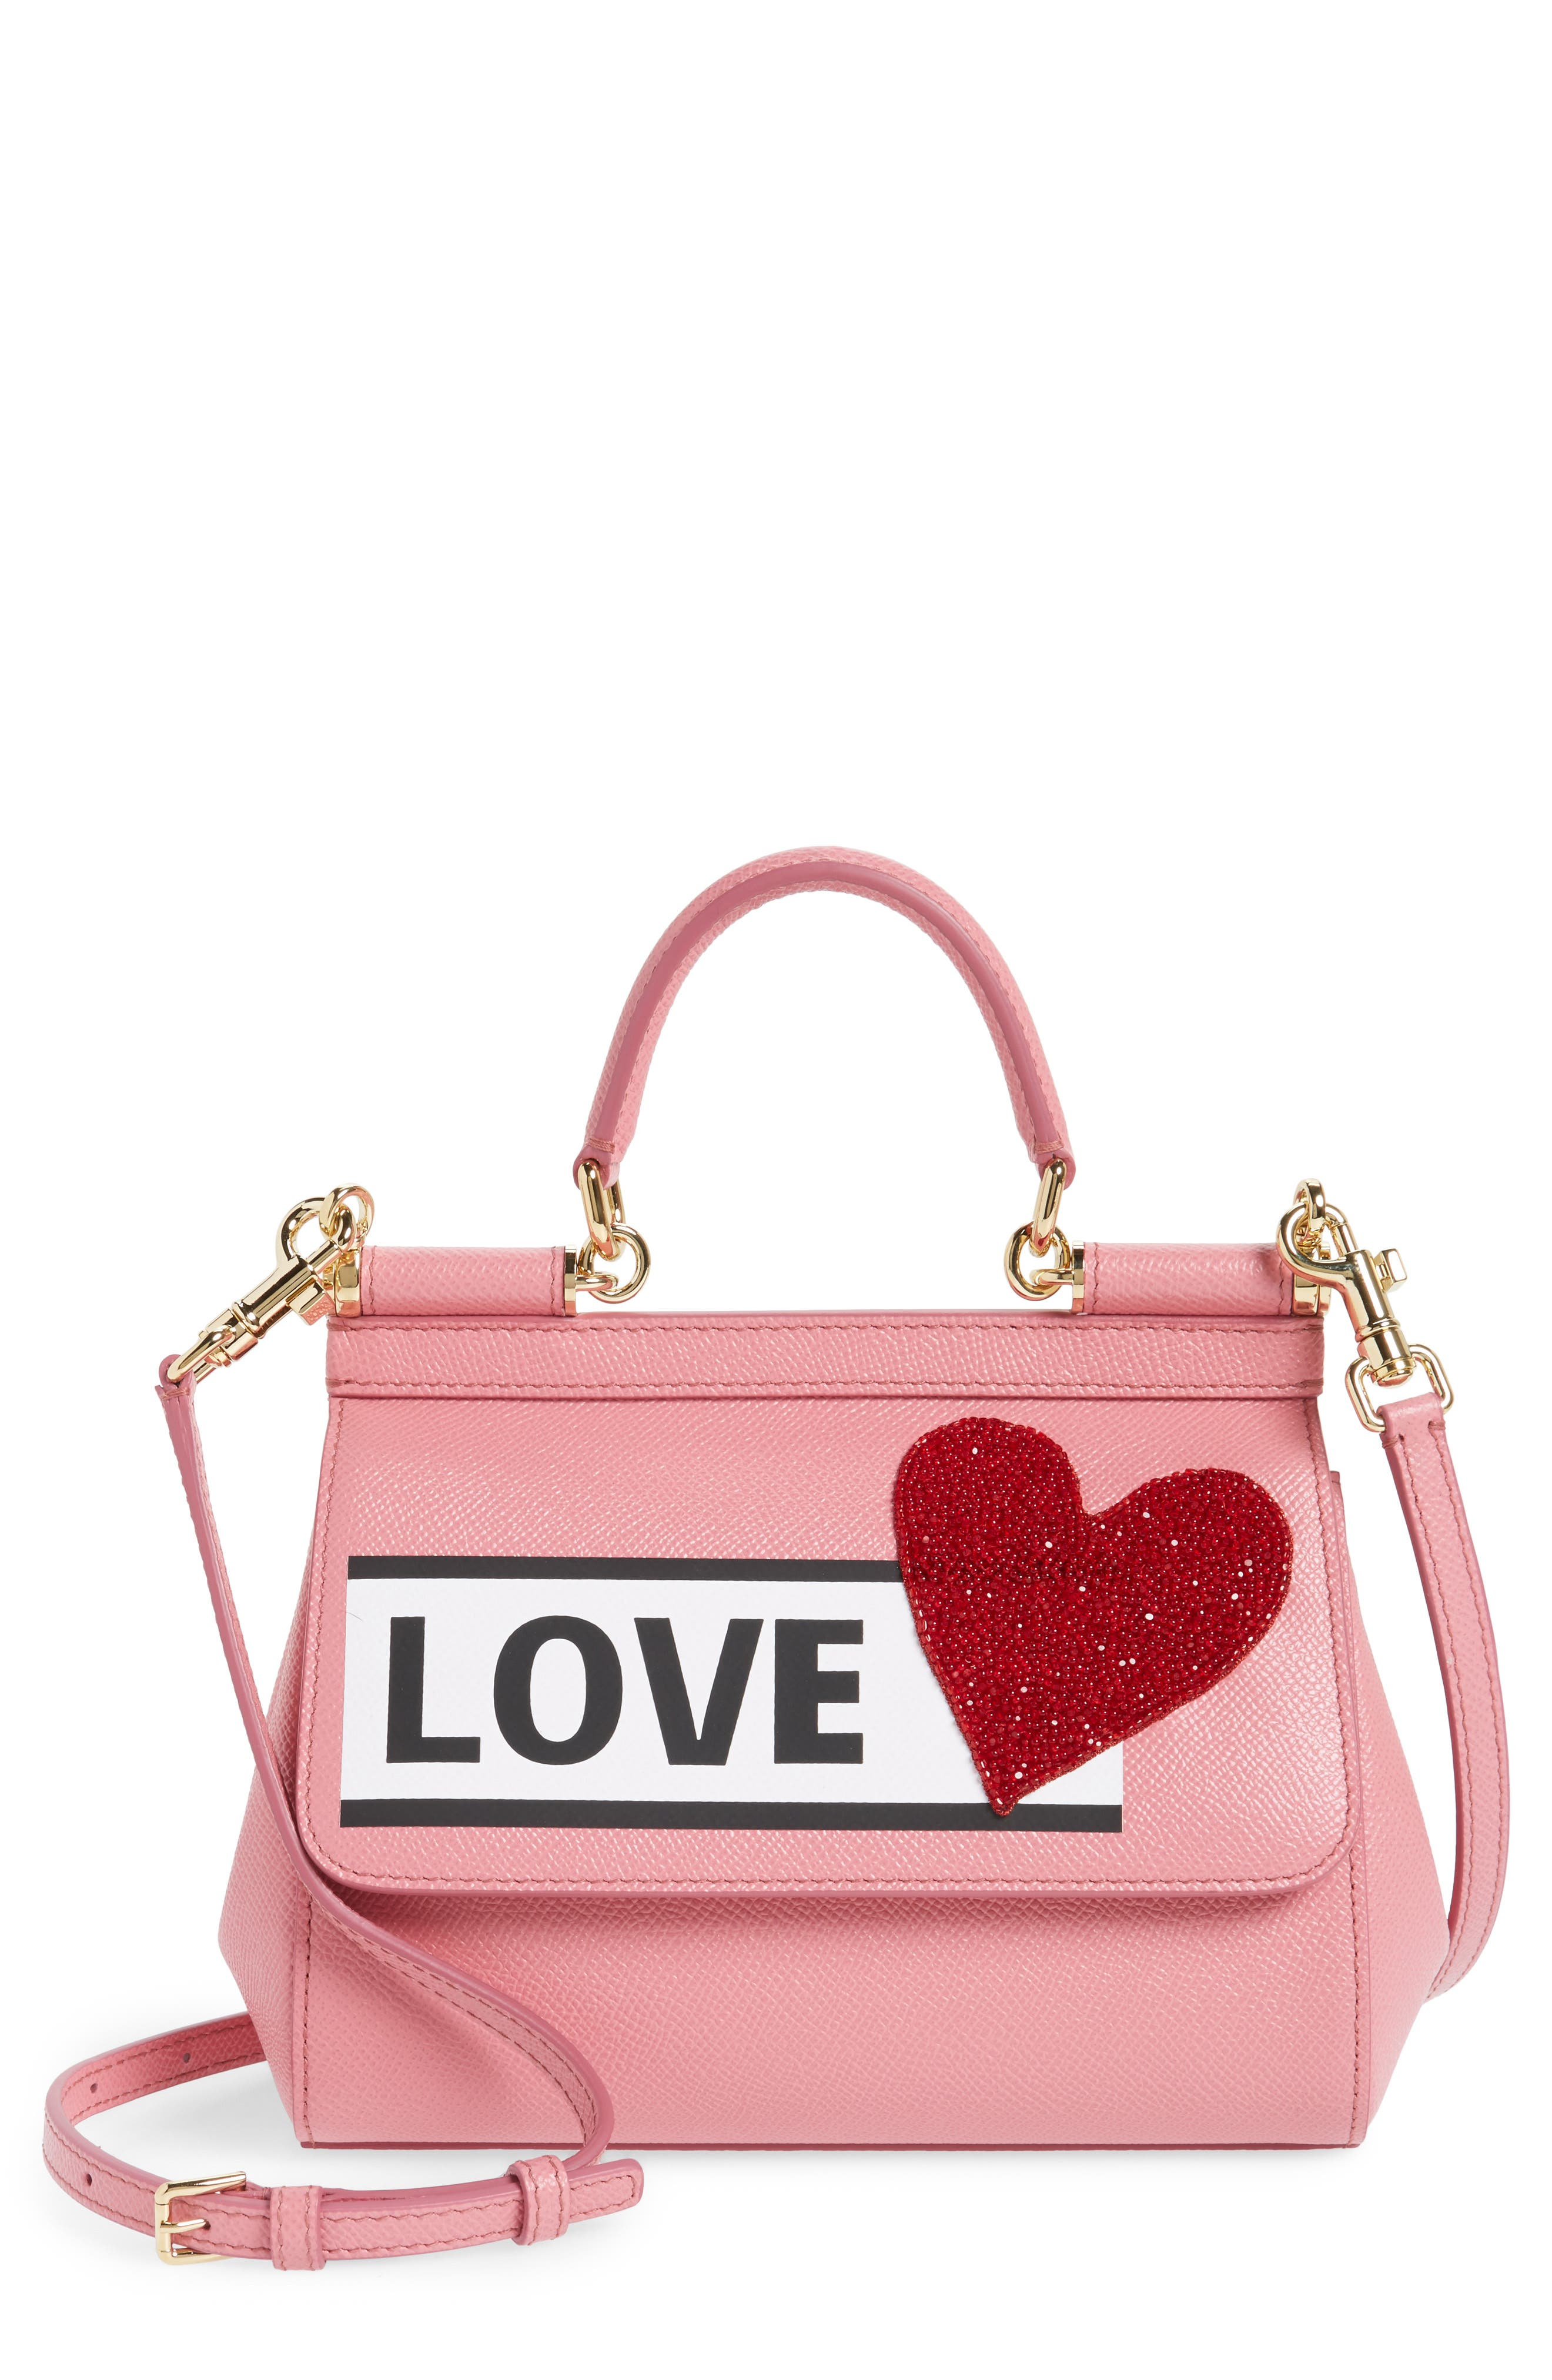 Small Miss Sicily - Love Leather Satchel,                         Main,                         color, Rosa Intenso